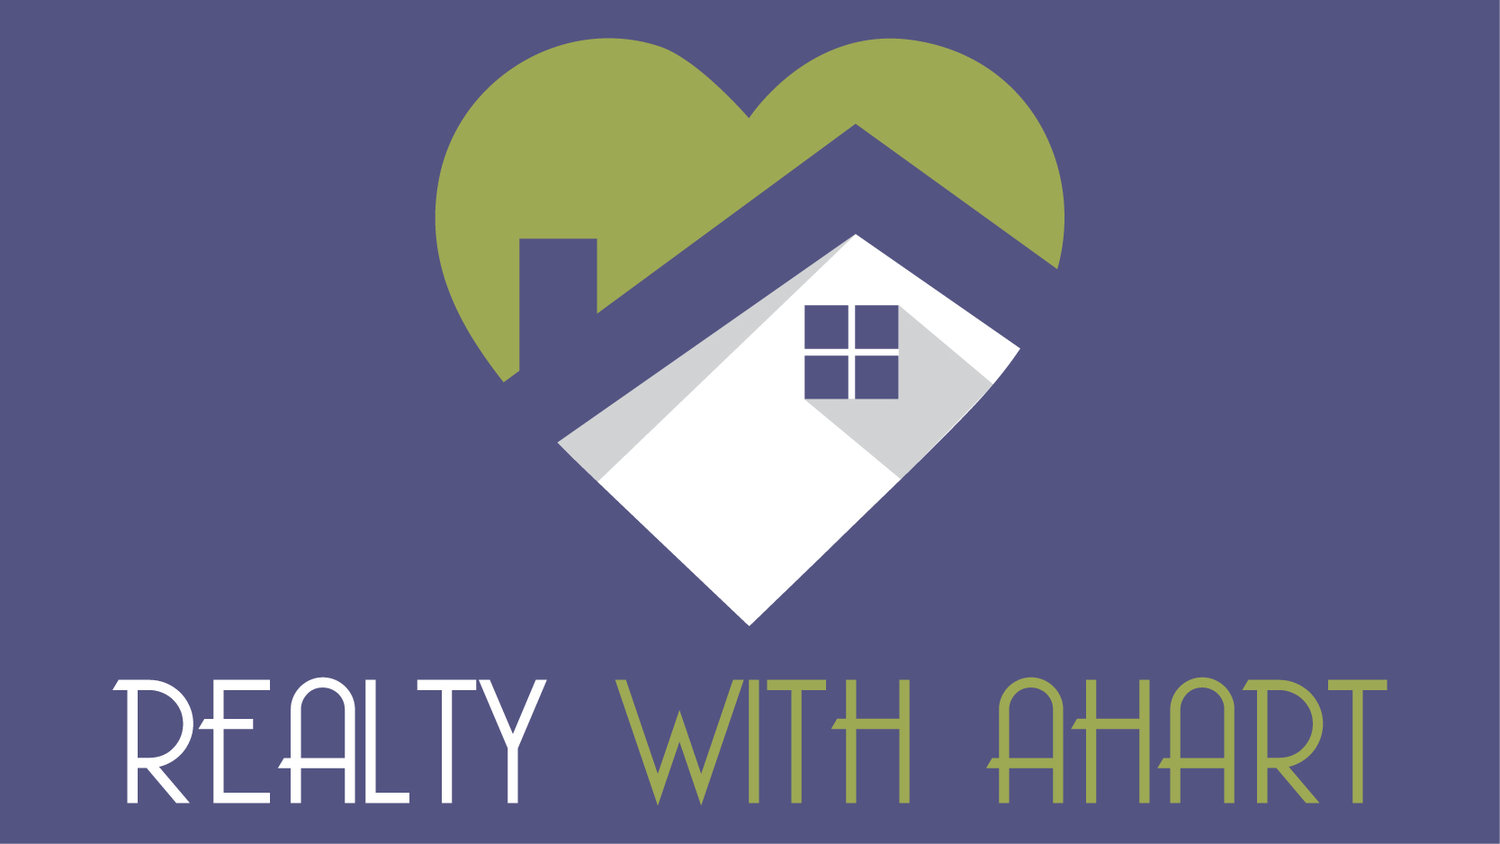 Realty with Ahart